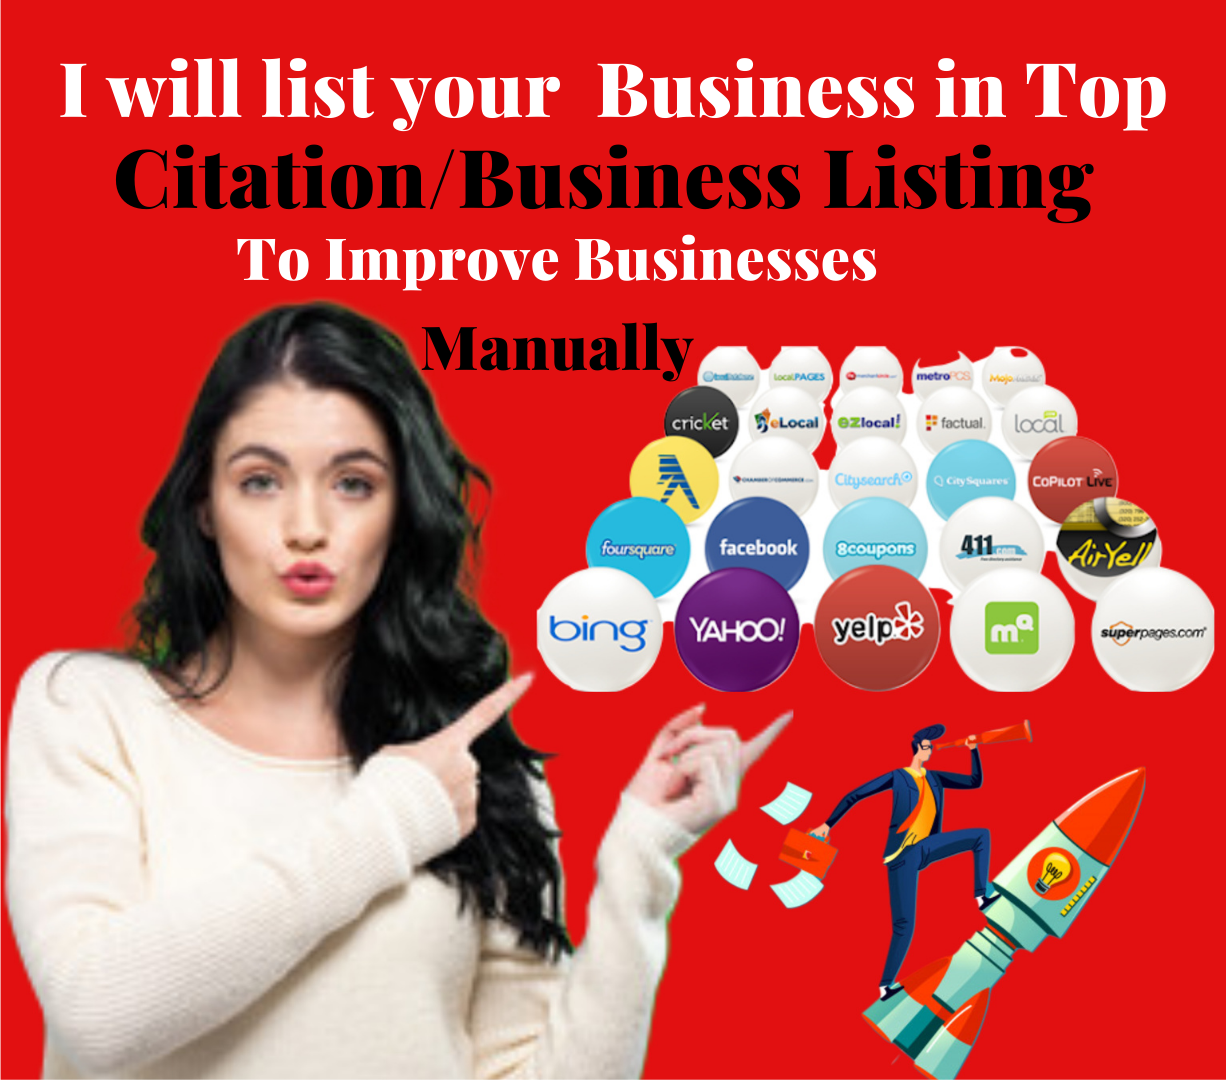 High Quality Manual 20 Live Local Business Listing for your Local Business Ranking.